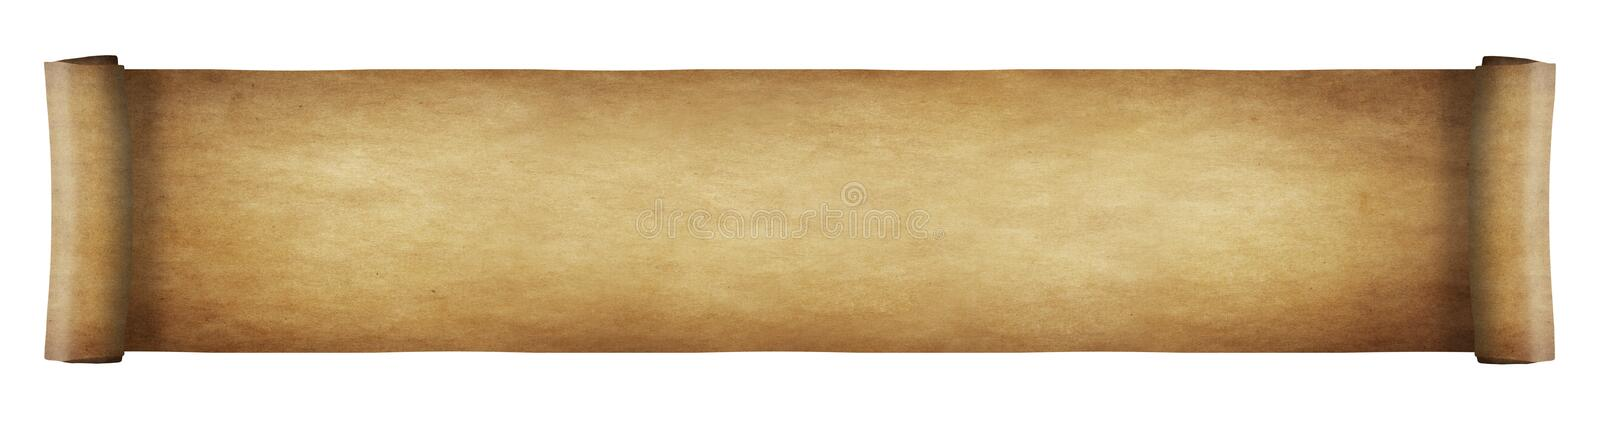 Aged paper scroll - long. Long aged grunge and yellowed paper scroll. Isolated on white background royalty free stock photography